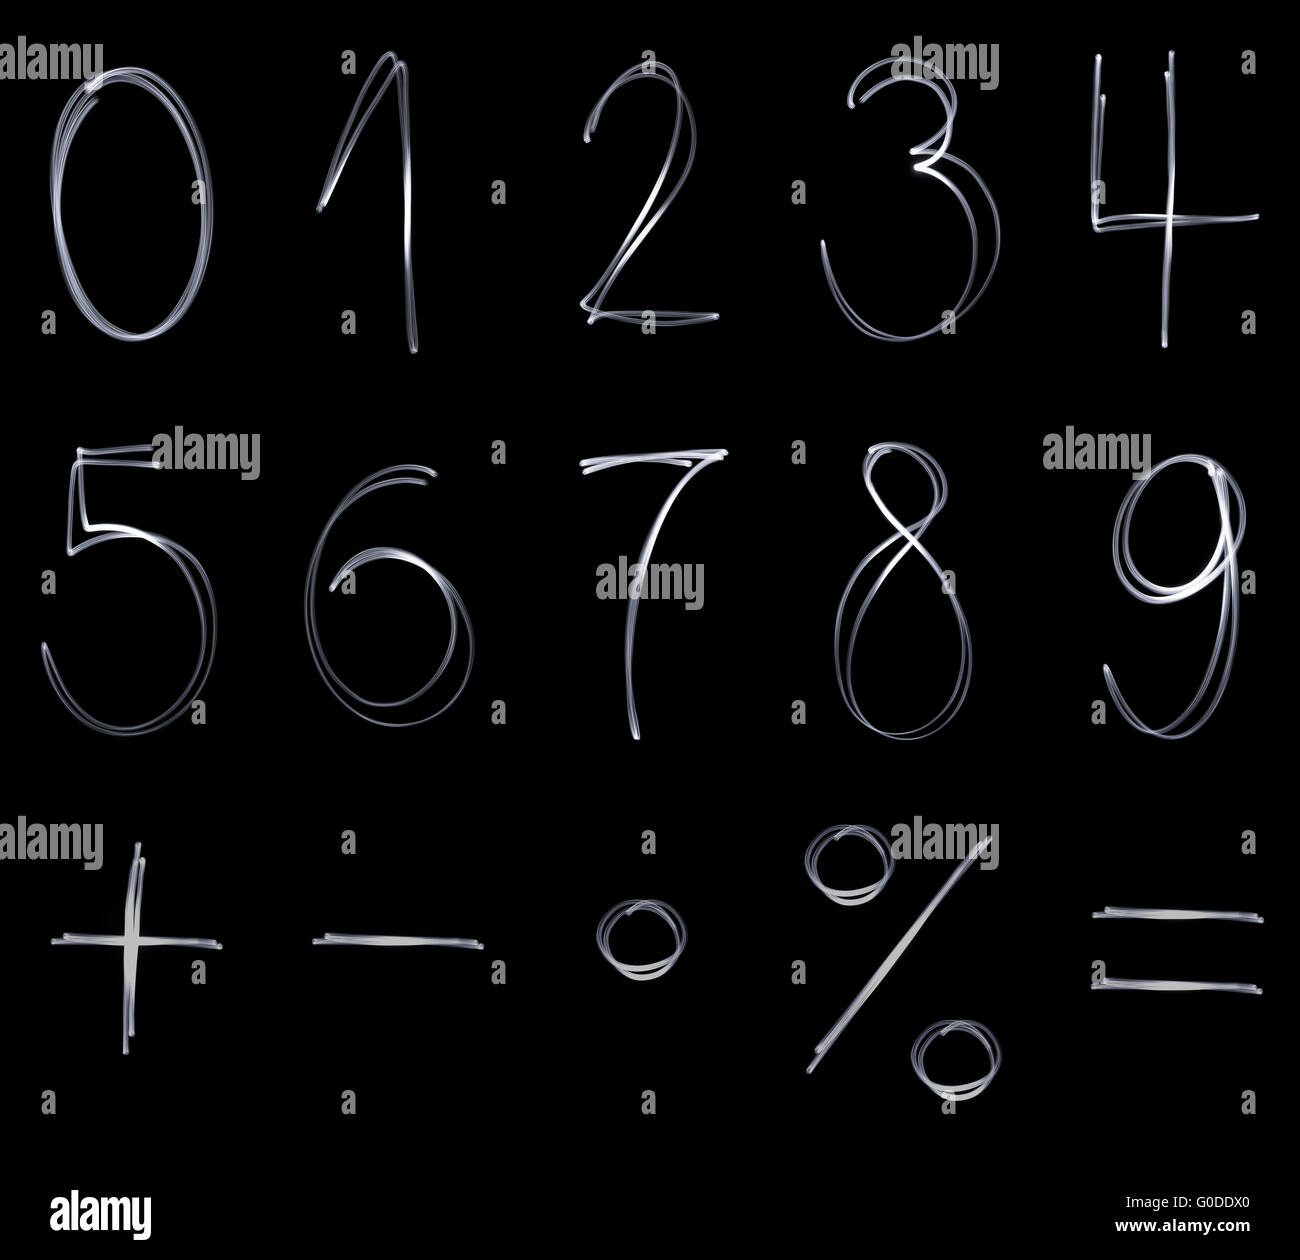 Different flourescent numbers and math symbols in stock photo different flourescent numbers and math symbols in buycottarizona